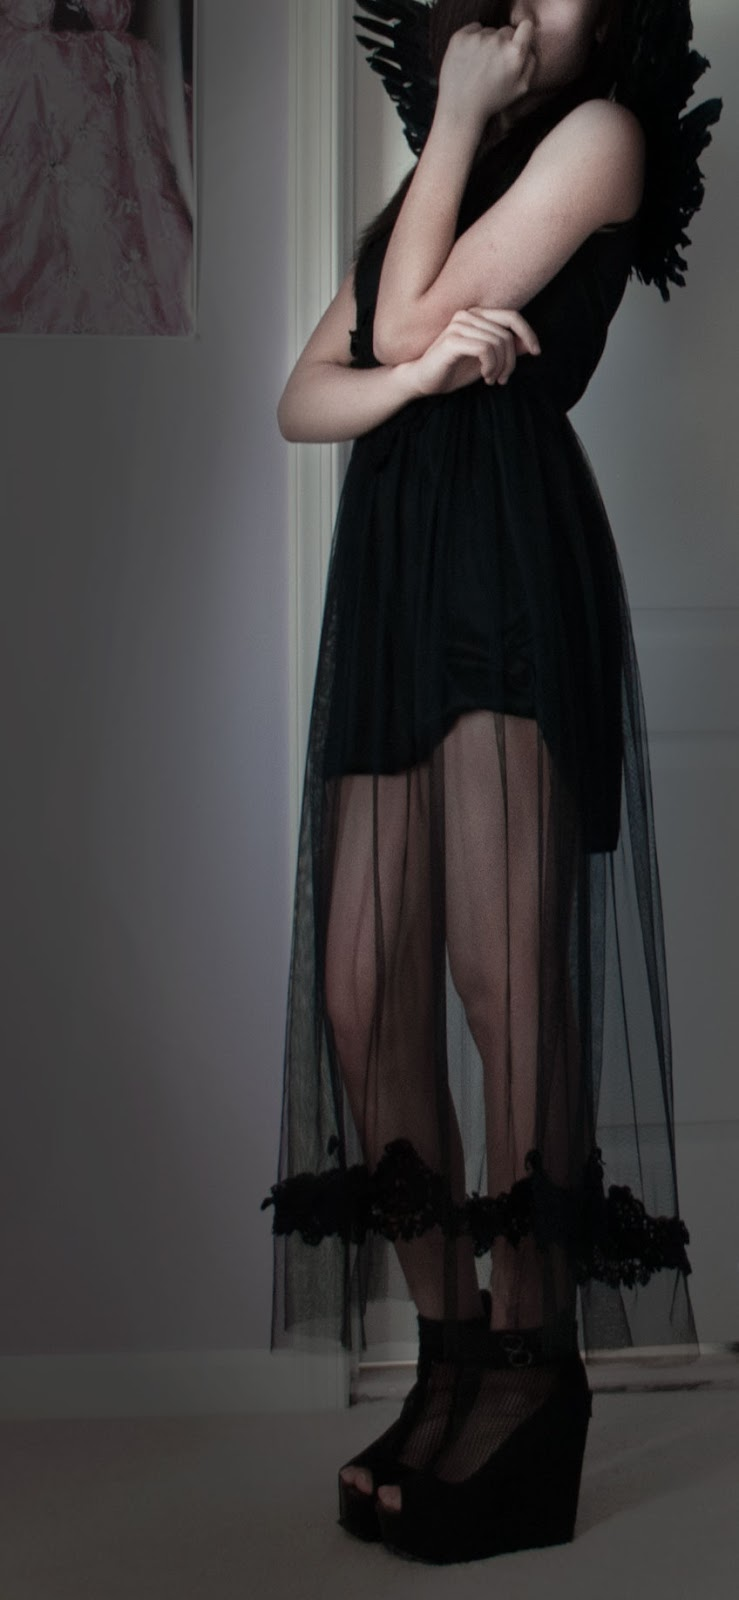 Dark Angel Halloween Look: full-body outfit with long mesh maxi dress, angel wings, and black wedges